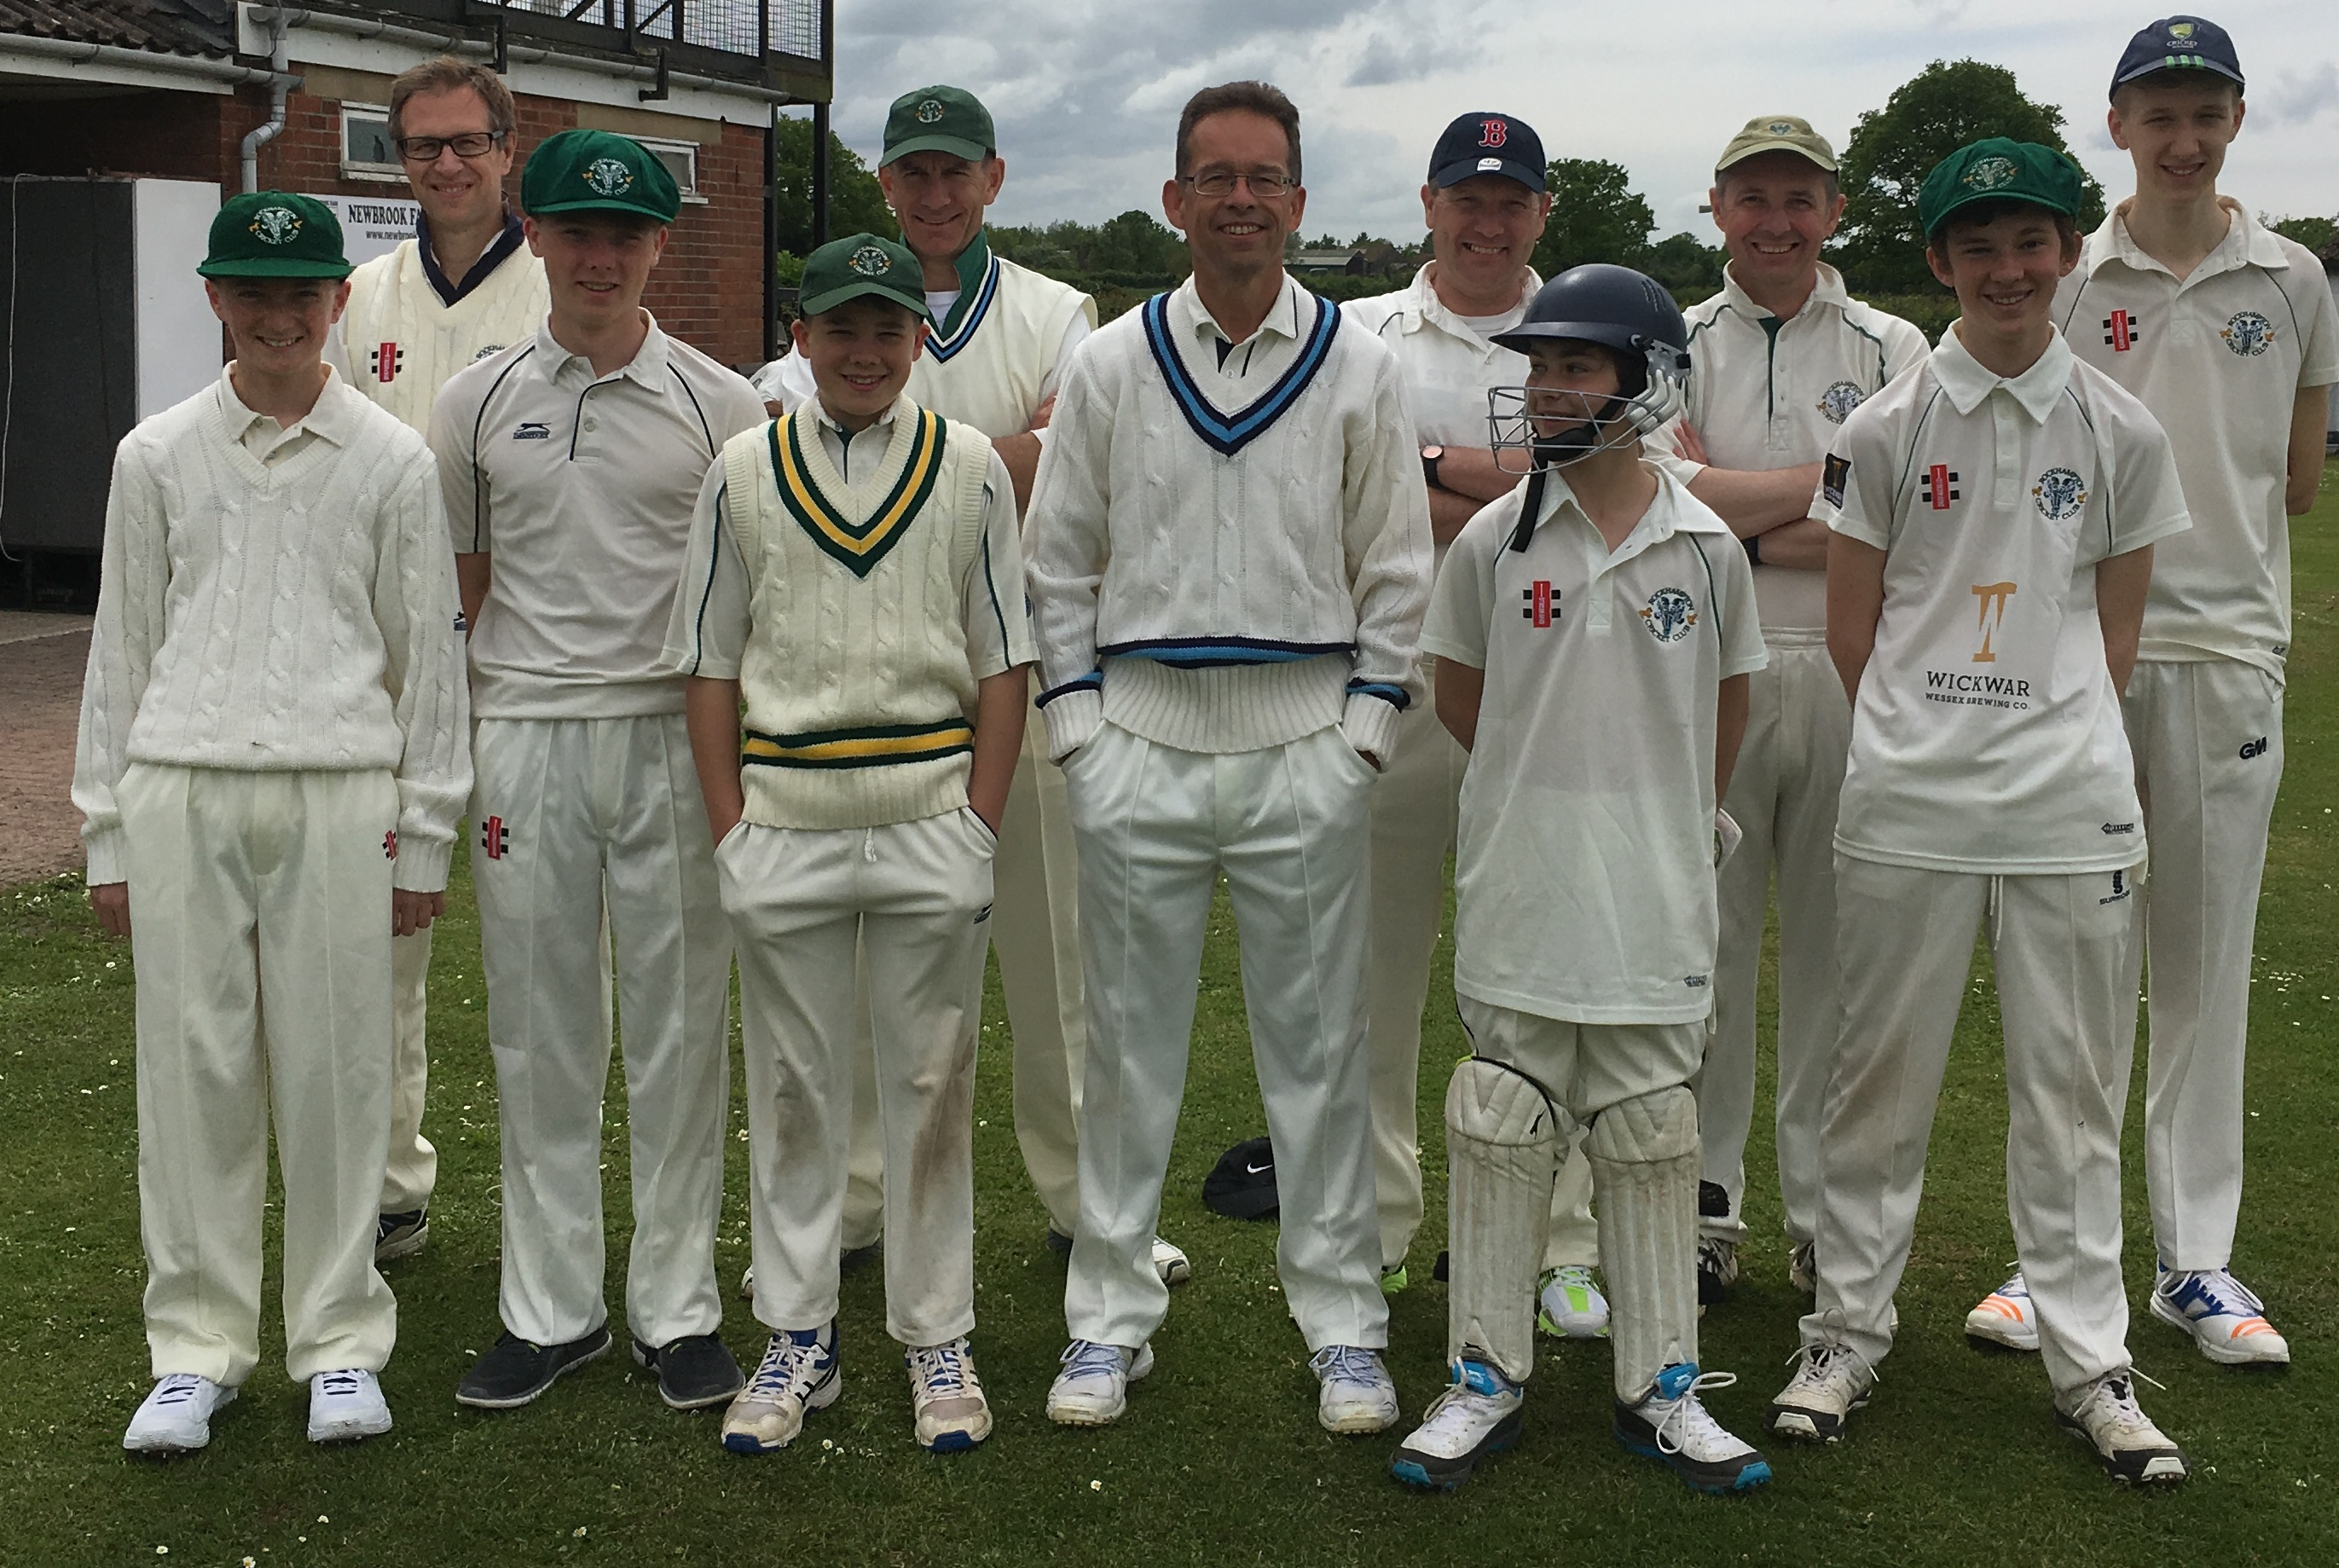 Dads and lads team up at Rockhampton